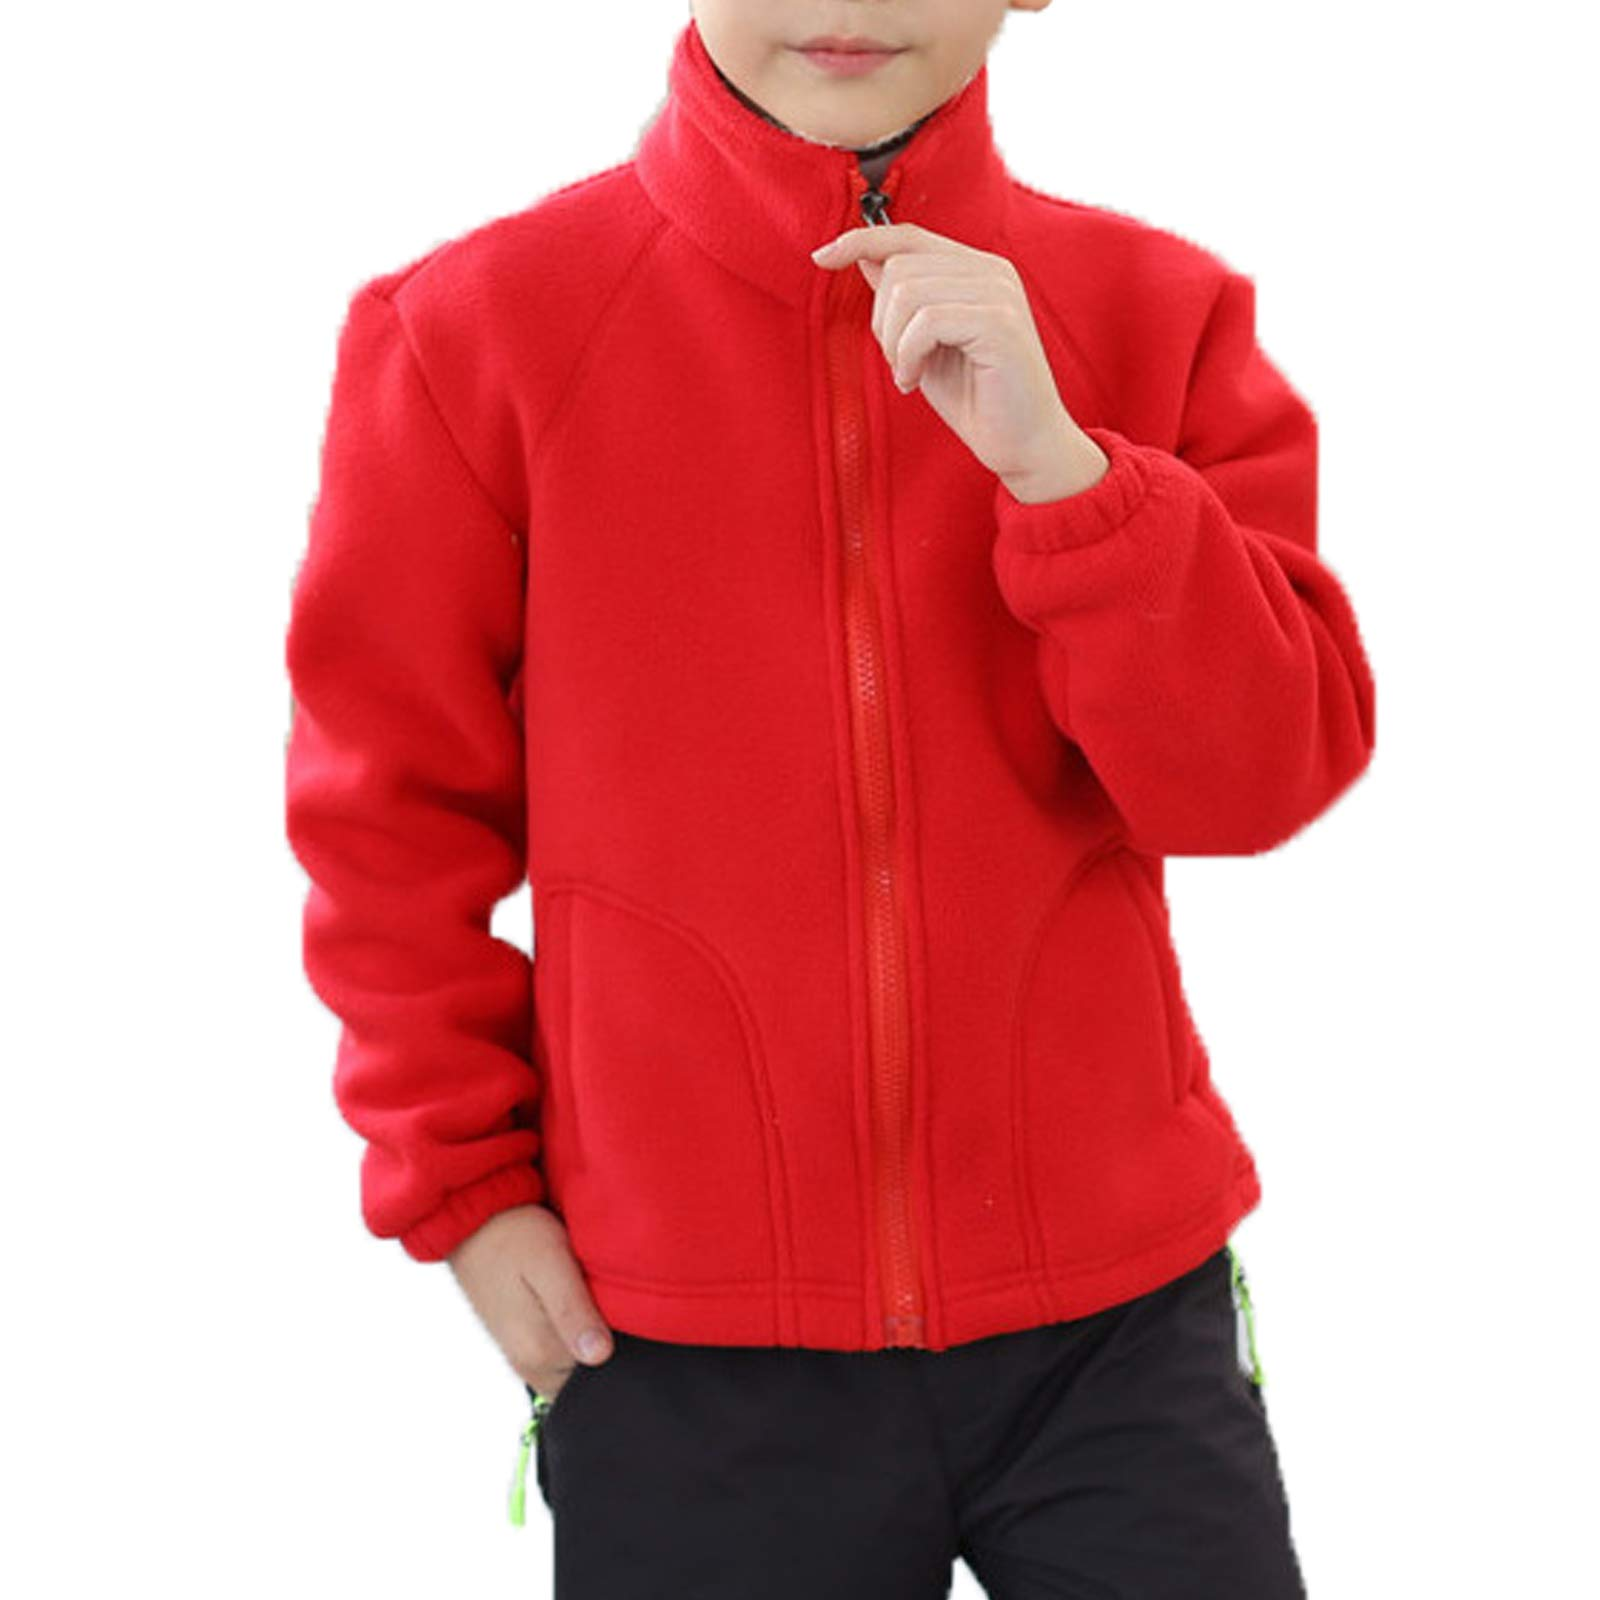 Elonglin Kids Fleece Jacket Full Zip Stand Collar Boys Sportwear Top Outwear Red3 Bust 33.4''(Asie XXS) by Elonglin